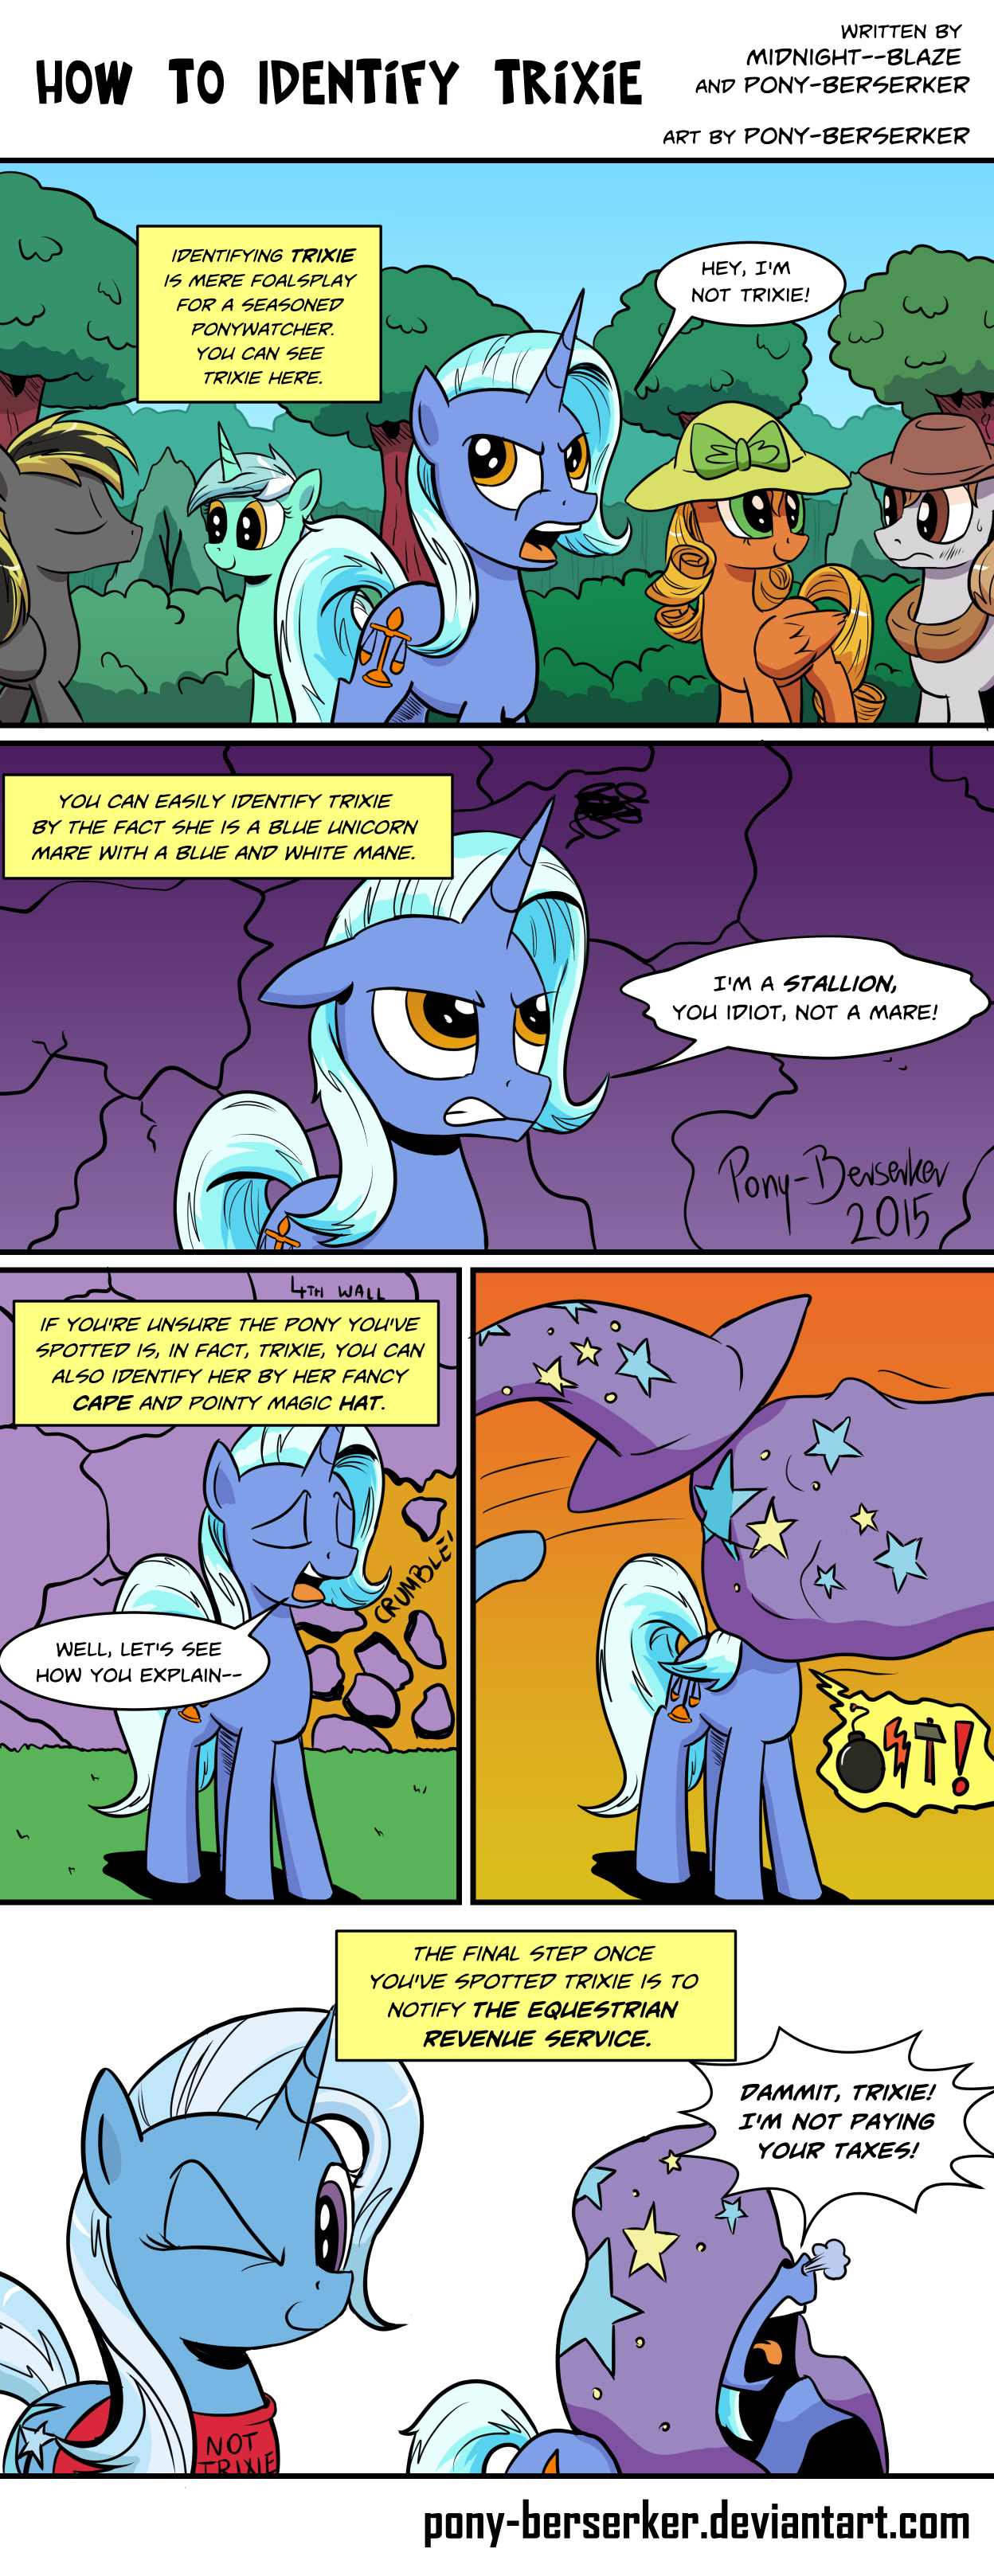 How To Identify Trixie by Pony-Berserker